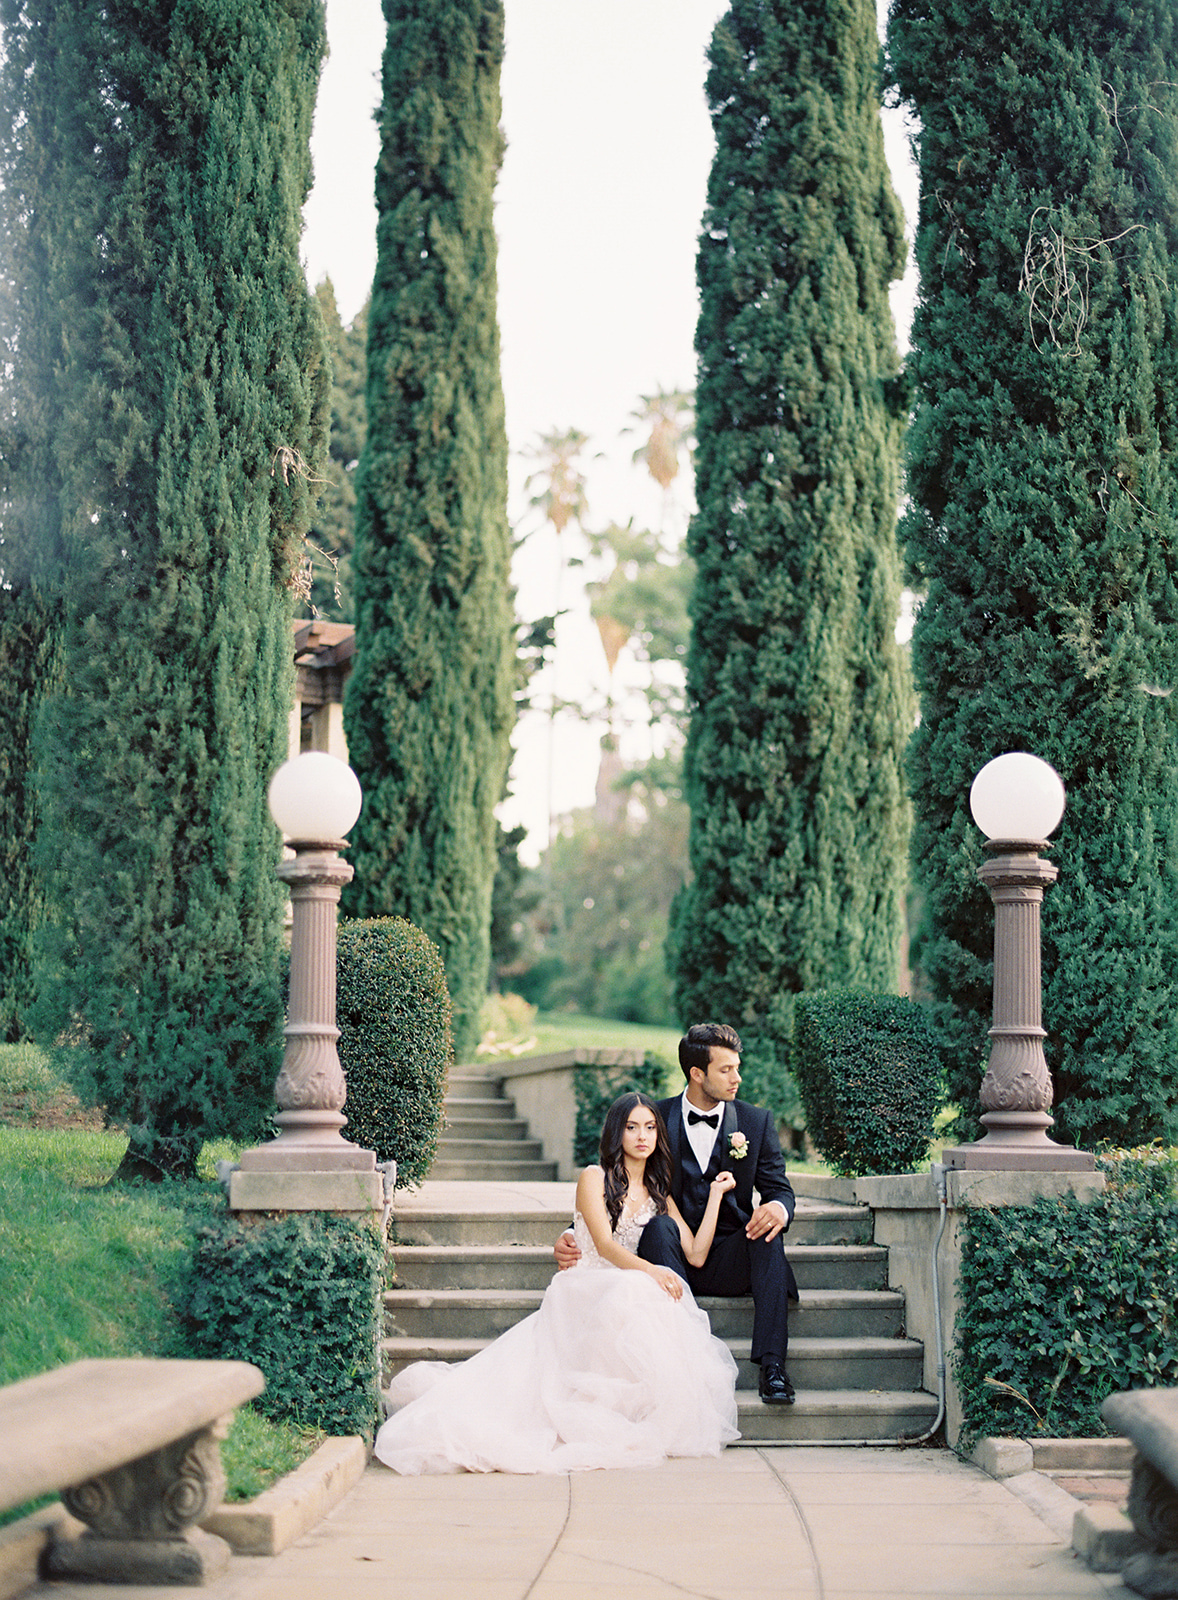 www.santabarbarawedding.com | Besame Floral | Carrie King Photography | Styled Shoot | Bride and Groom